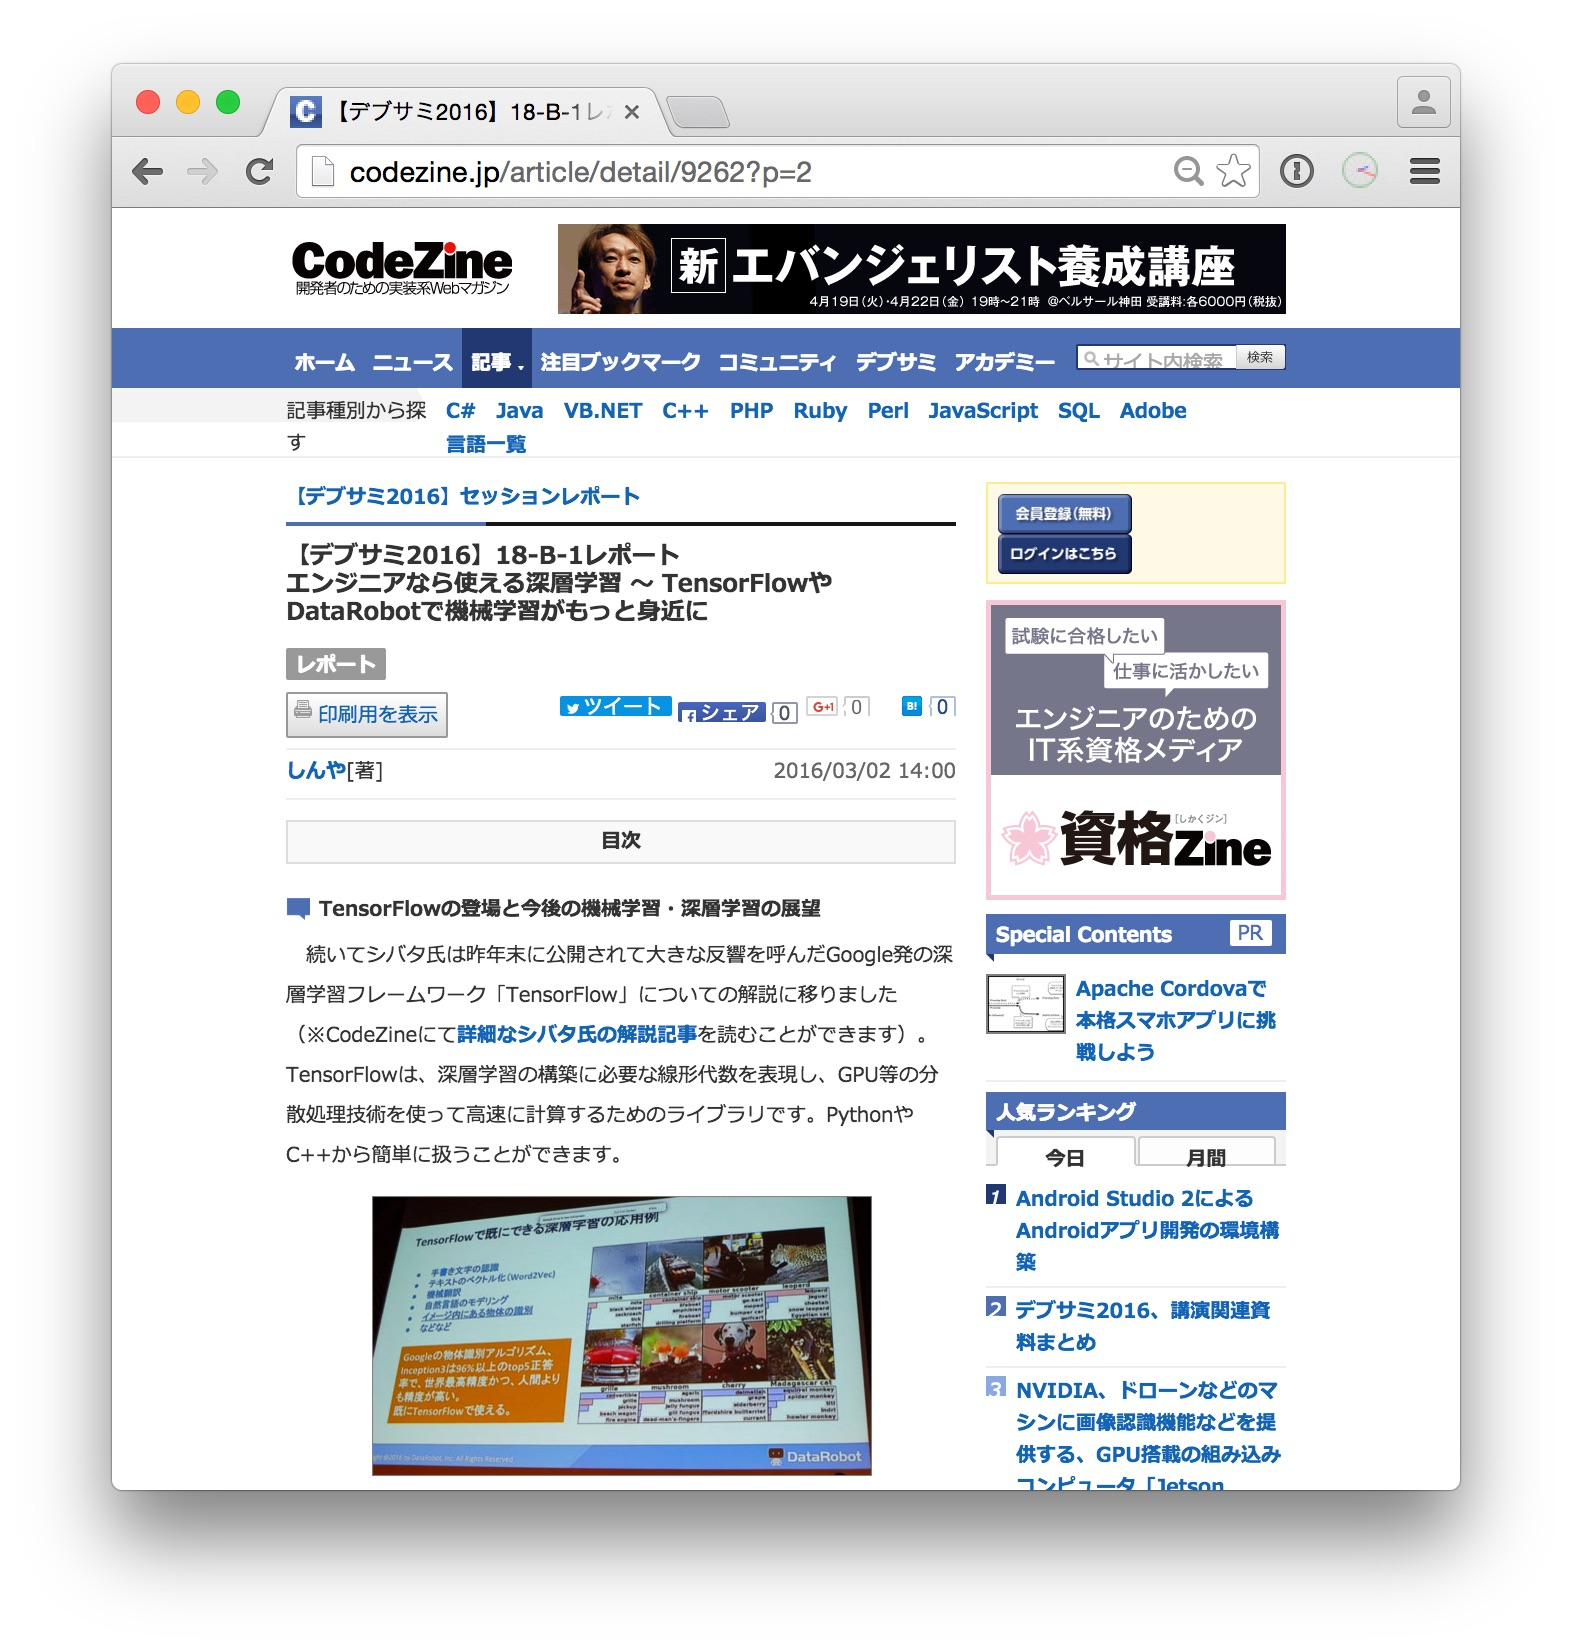 codezine-devsumi2016-report-01